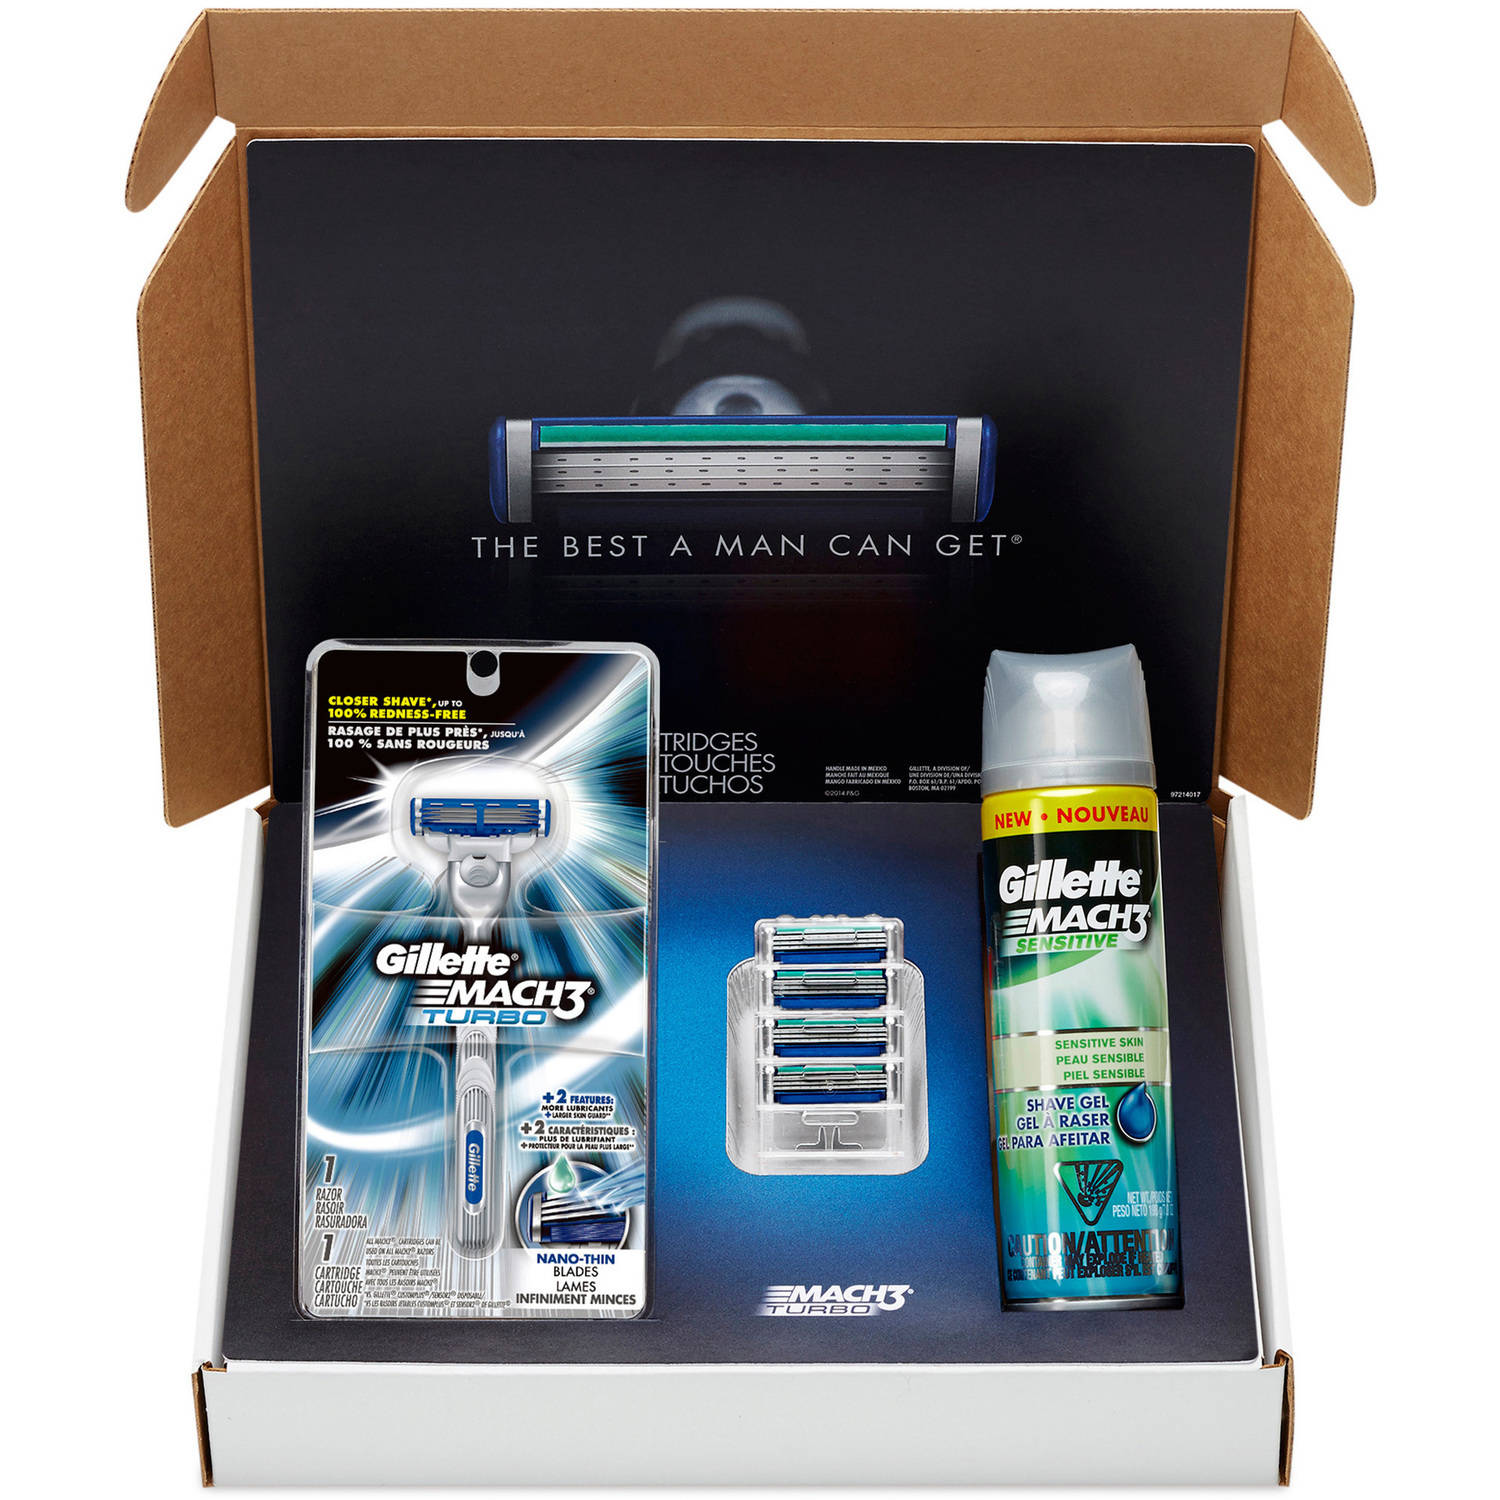 Gillette MACH3 Turbo Bundle with Razor Blade Refills + MACH3 Turbo Handle  + MACH3 Sensitive Shave Gel Kit, 7 pc